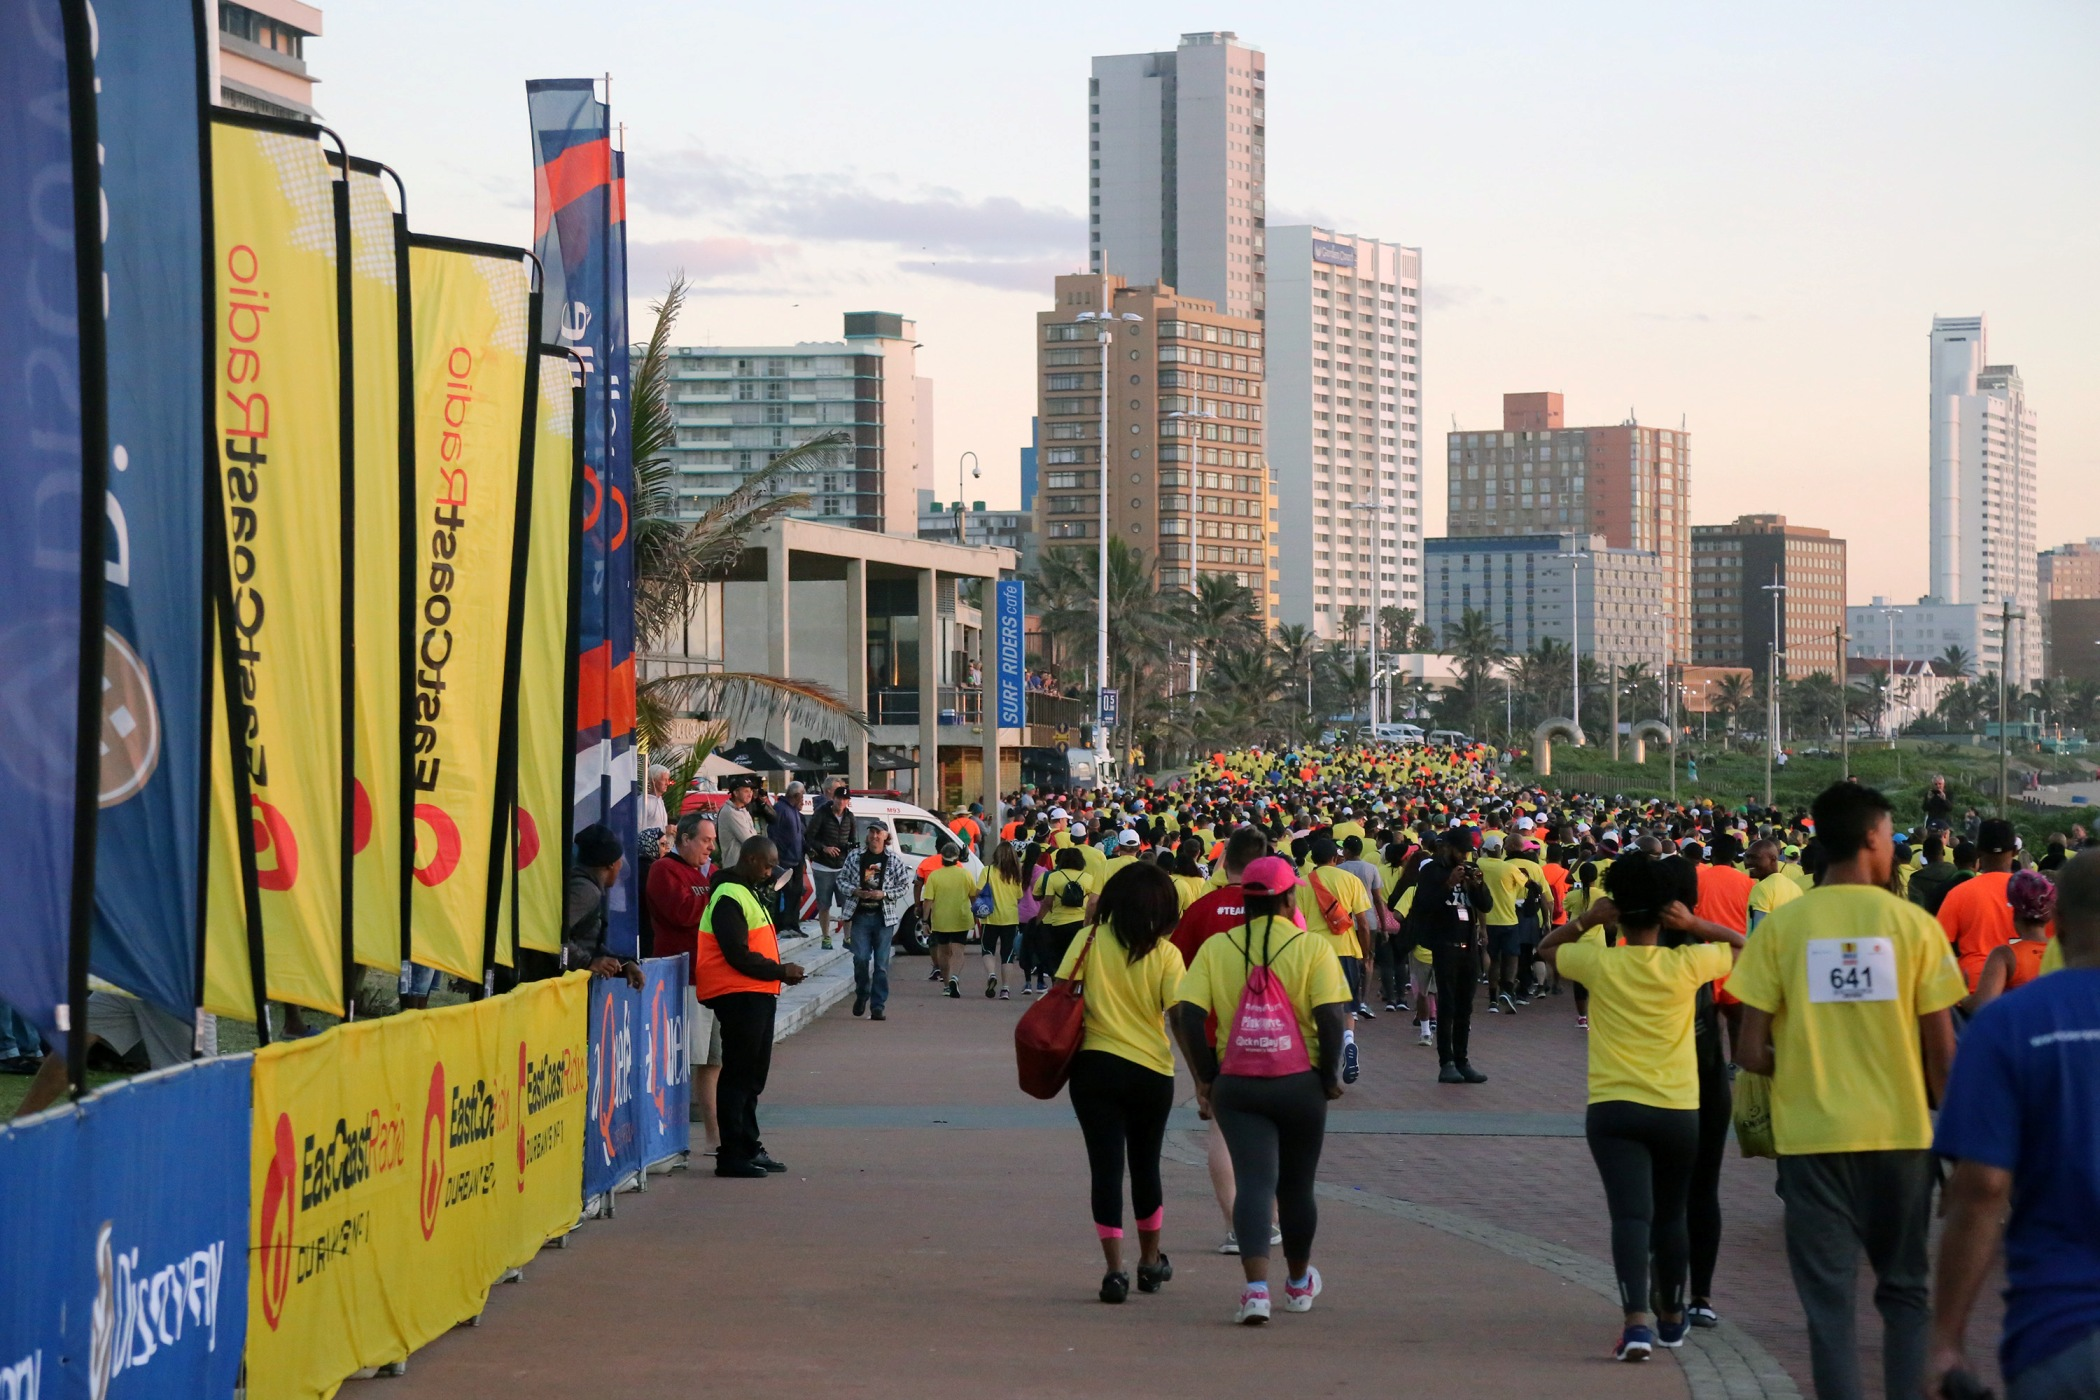 More than 30 thousand people join in the Discovery East Coast Radio Big Walk